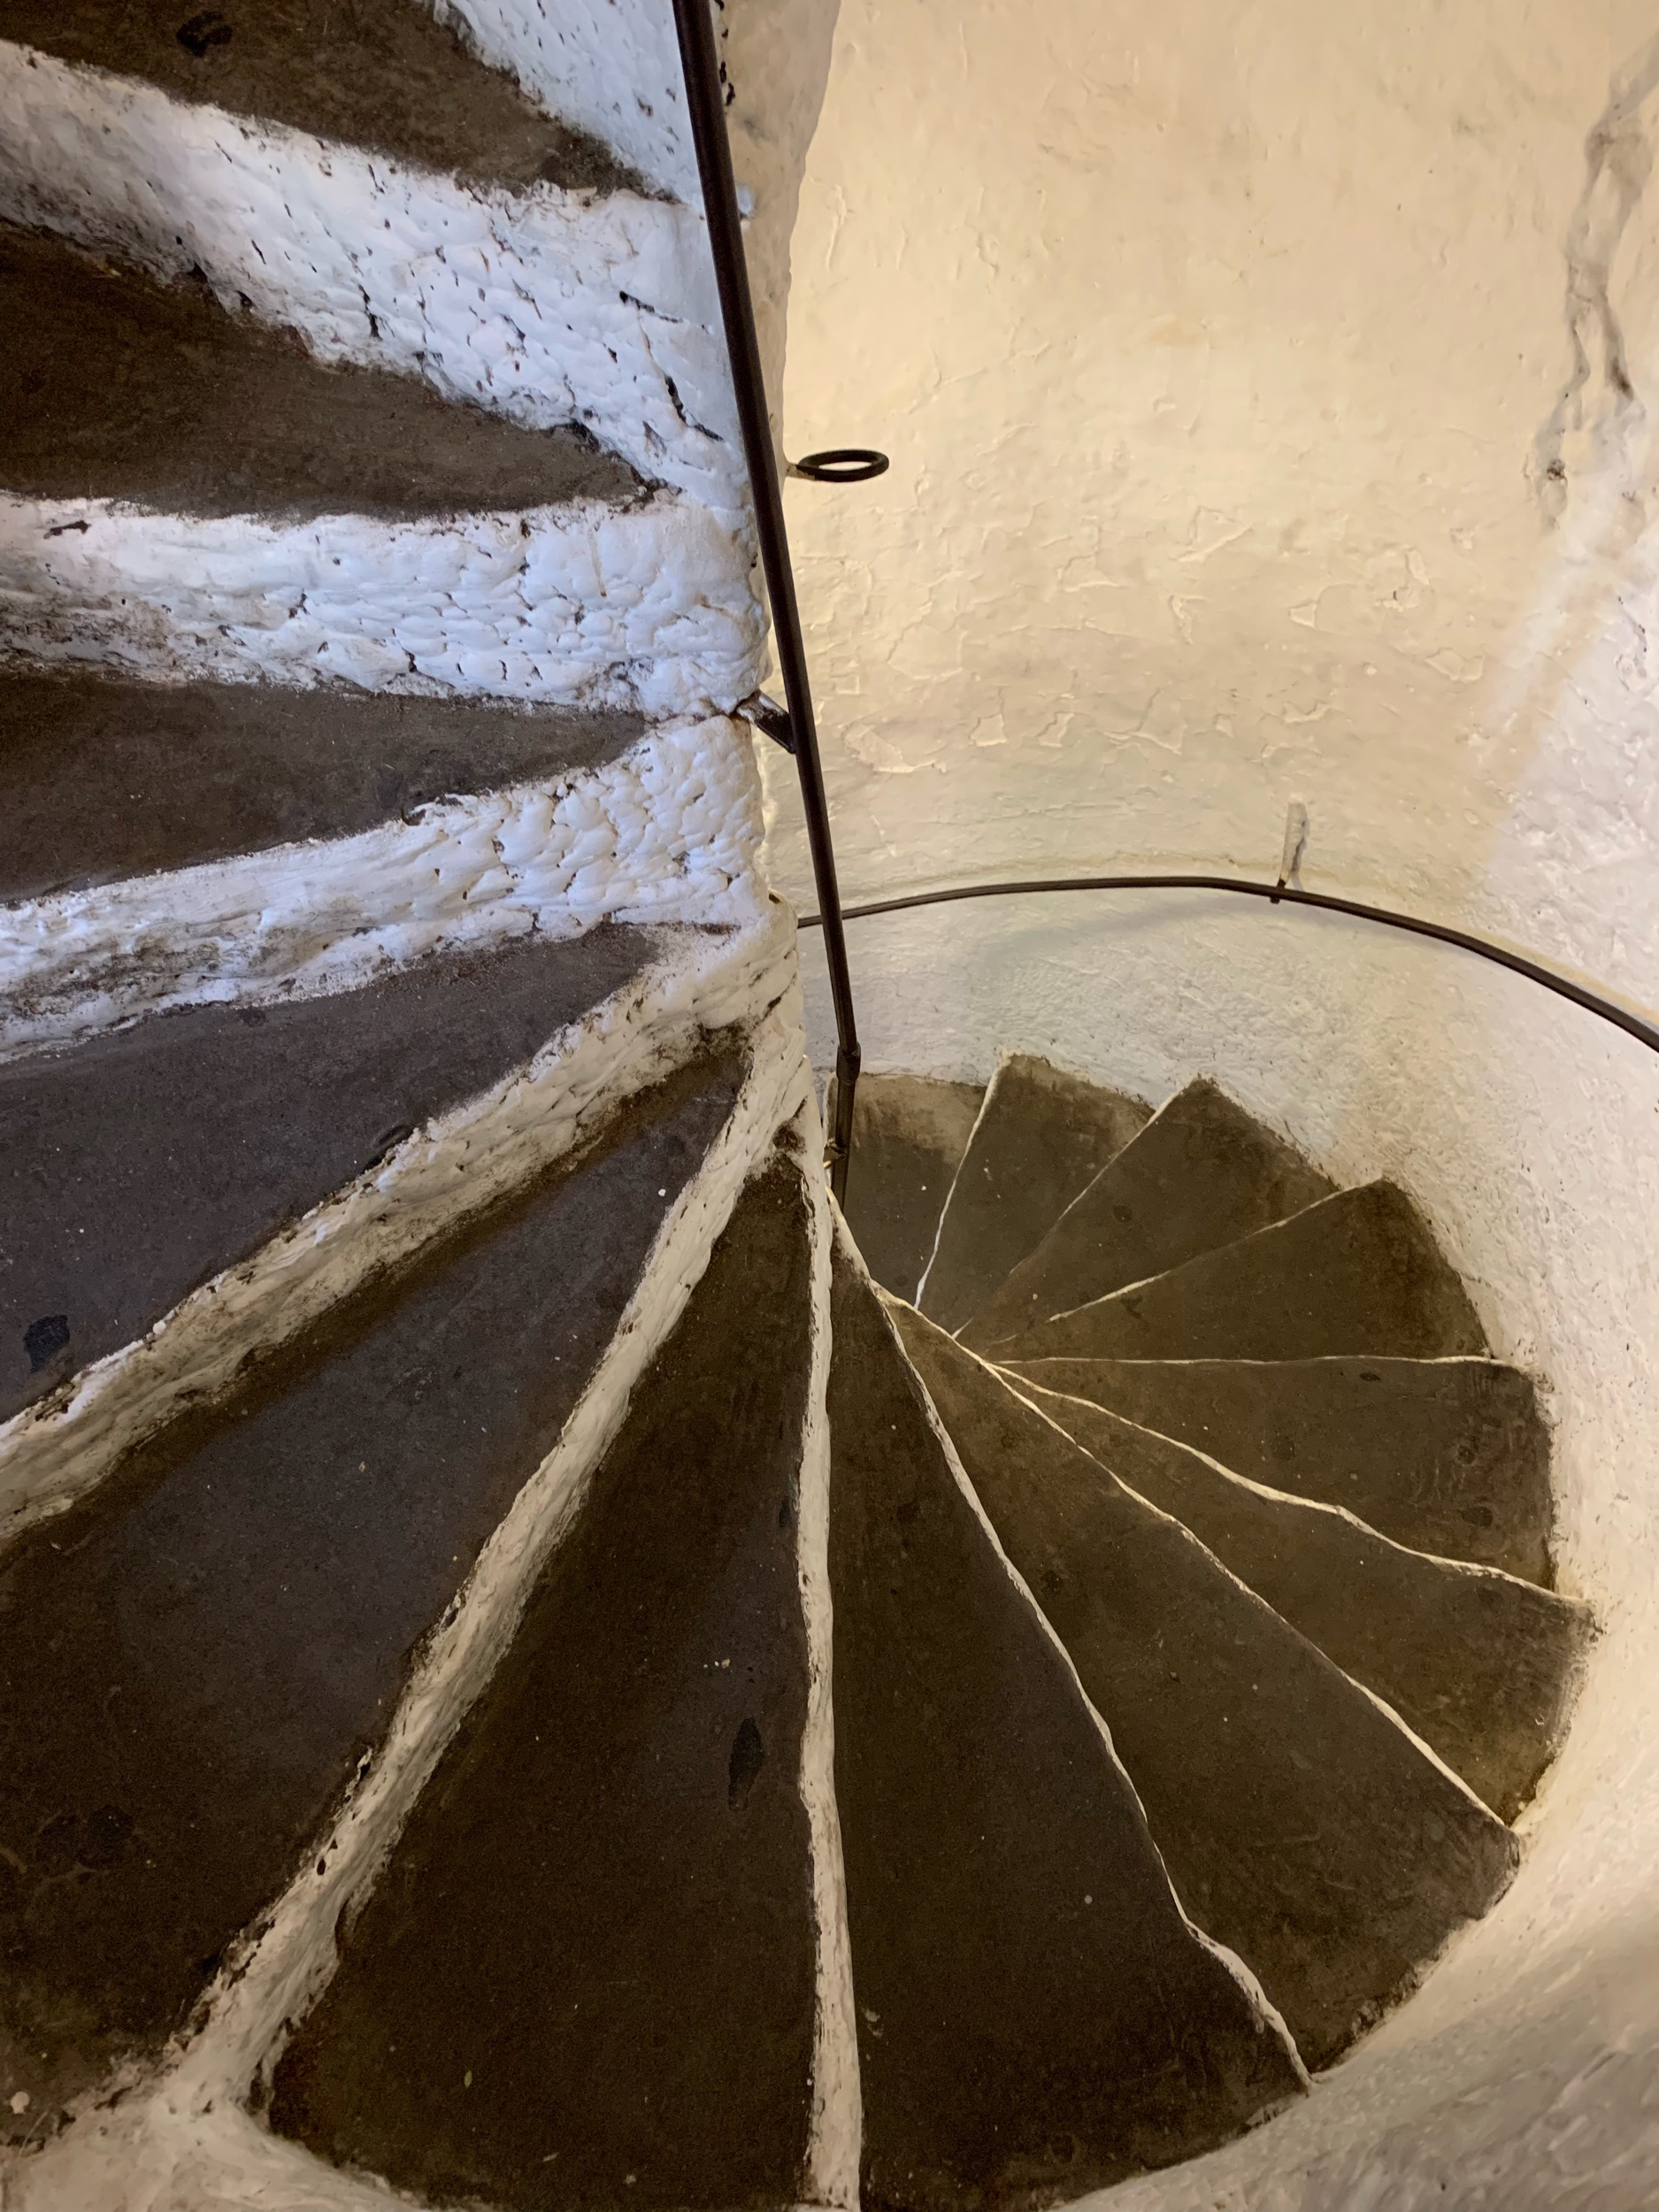 May 22, 2019 - Spiral steps at Bunratty Castle (the rooftop's over 5 stories high!). West Bunratty, County Clare, Ireland. No edits.